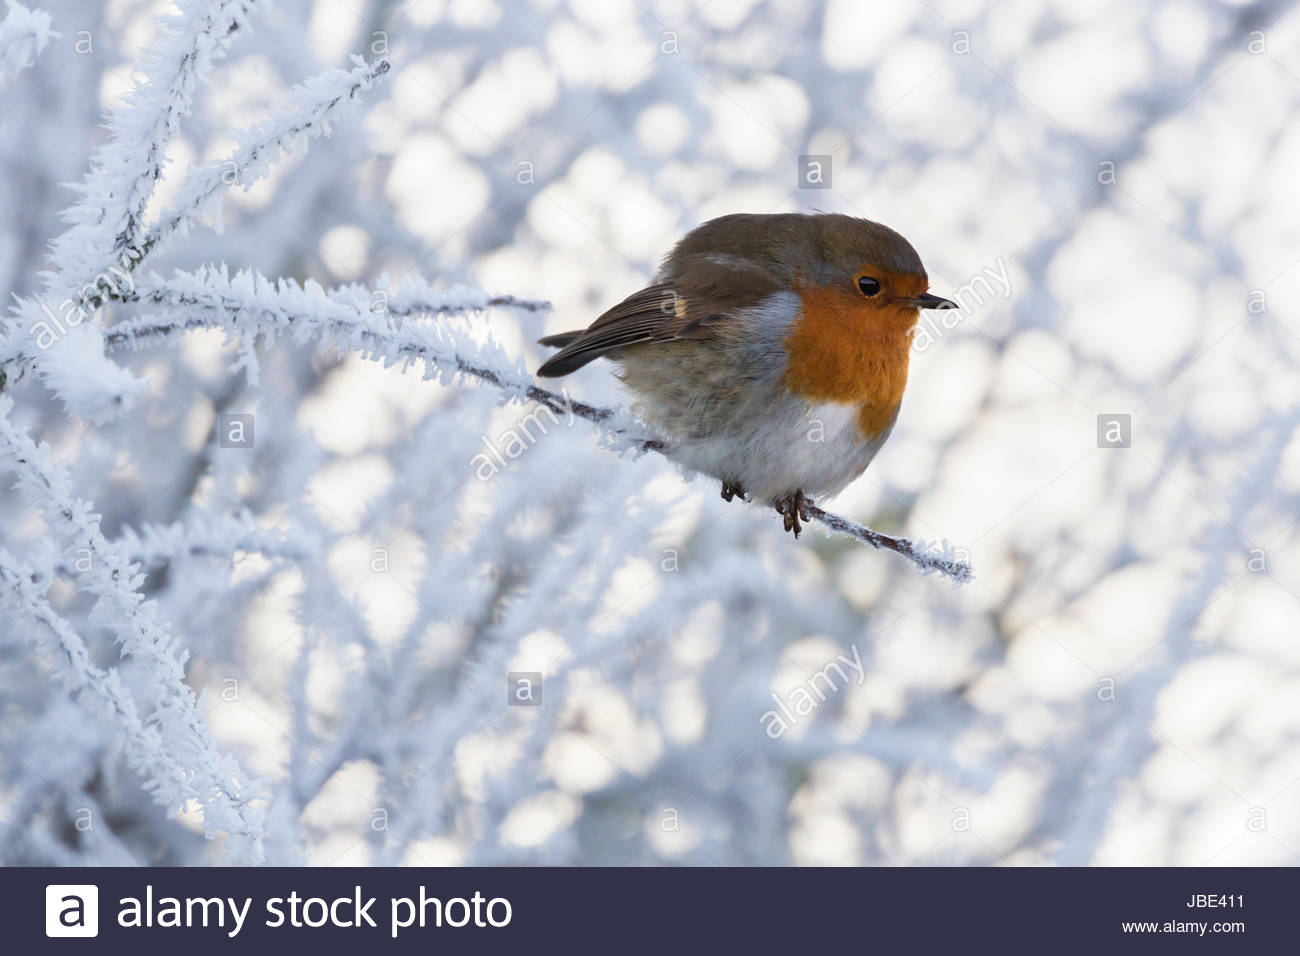 Robin (Erithacus rubecula) in frost, Caerlaverock Wildfowl & Wetland Trust reserve, Dumfries & Galloway, - Stock Image